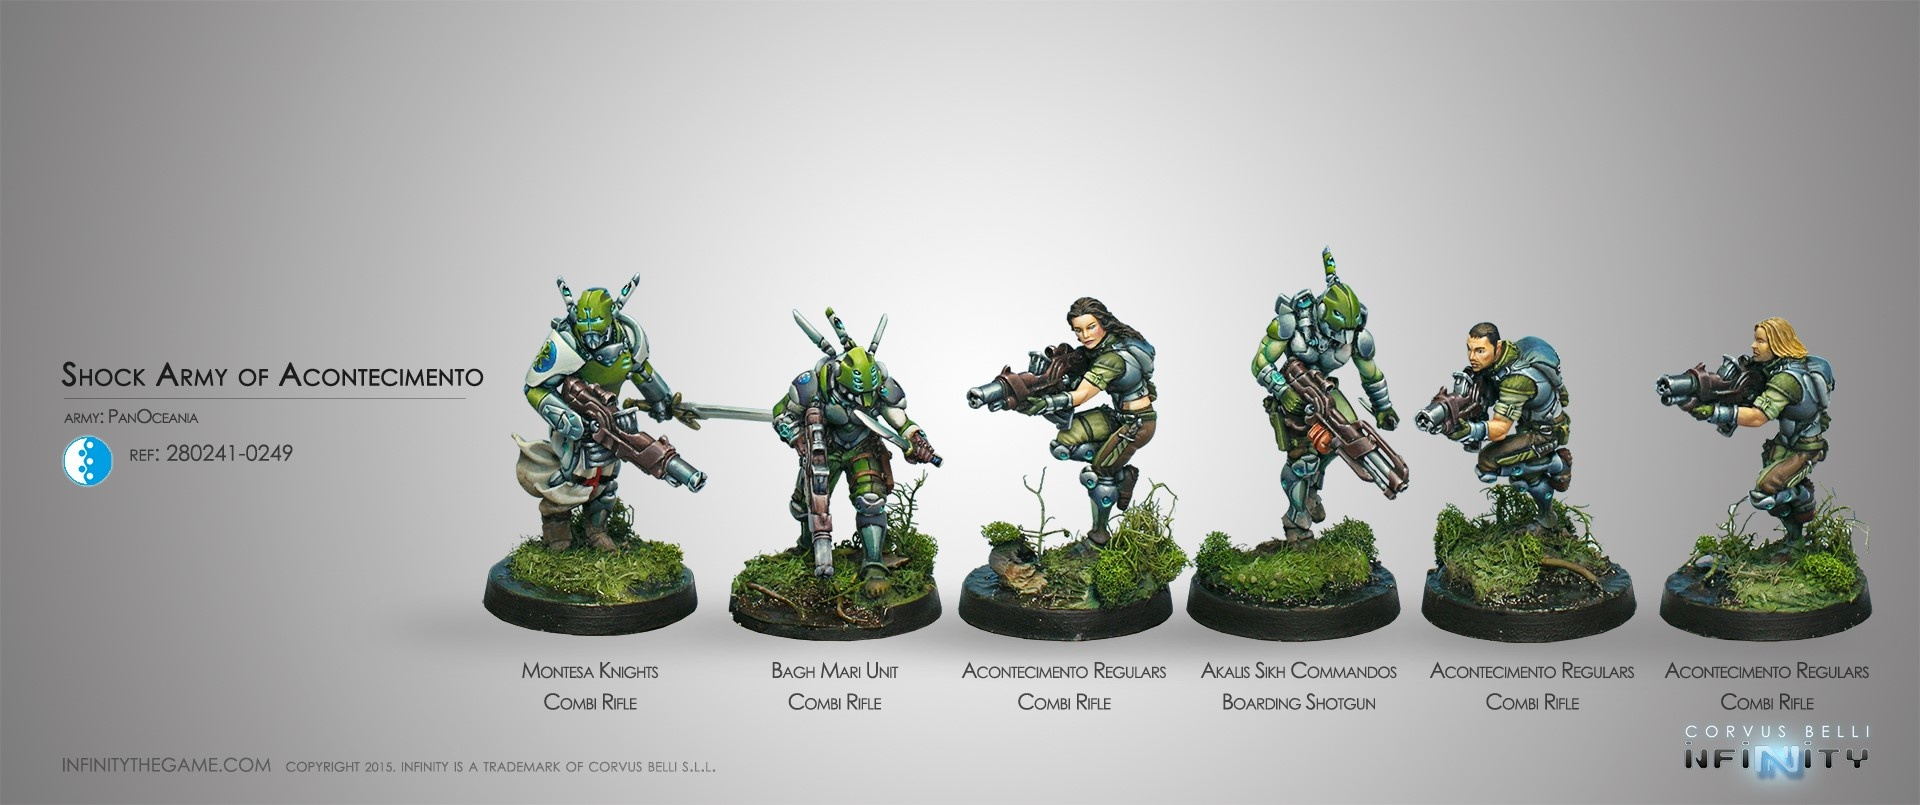 Infinity Shock Army of Acontecimento (PanOceania Sectorial Starter Pack) - Infinity - CVB 280241-0249